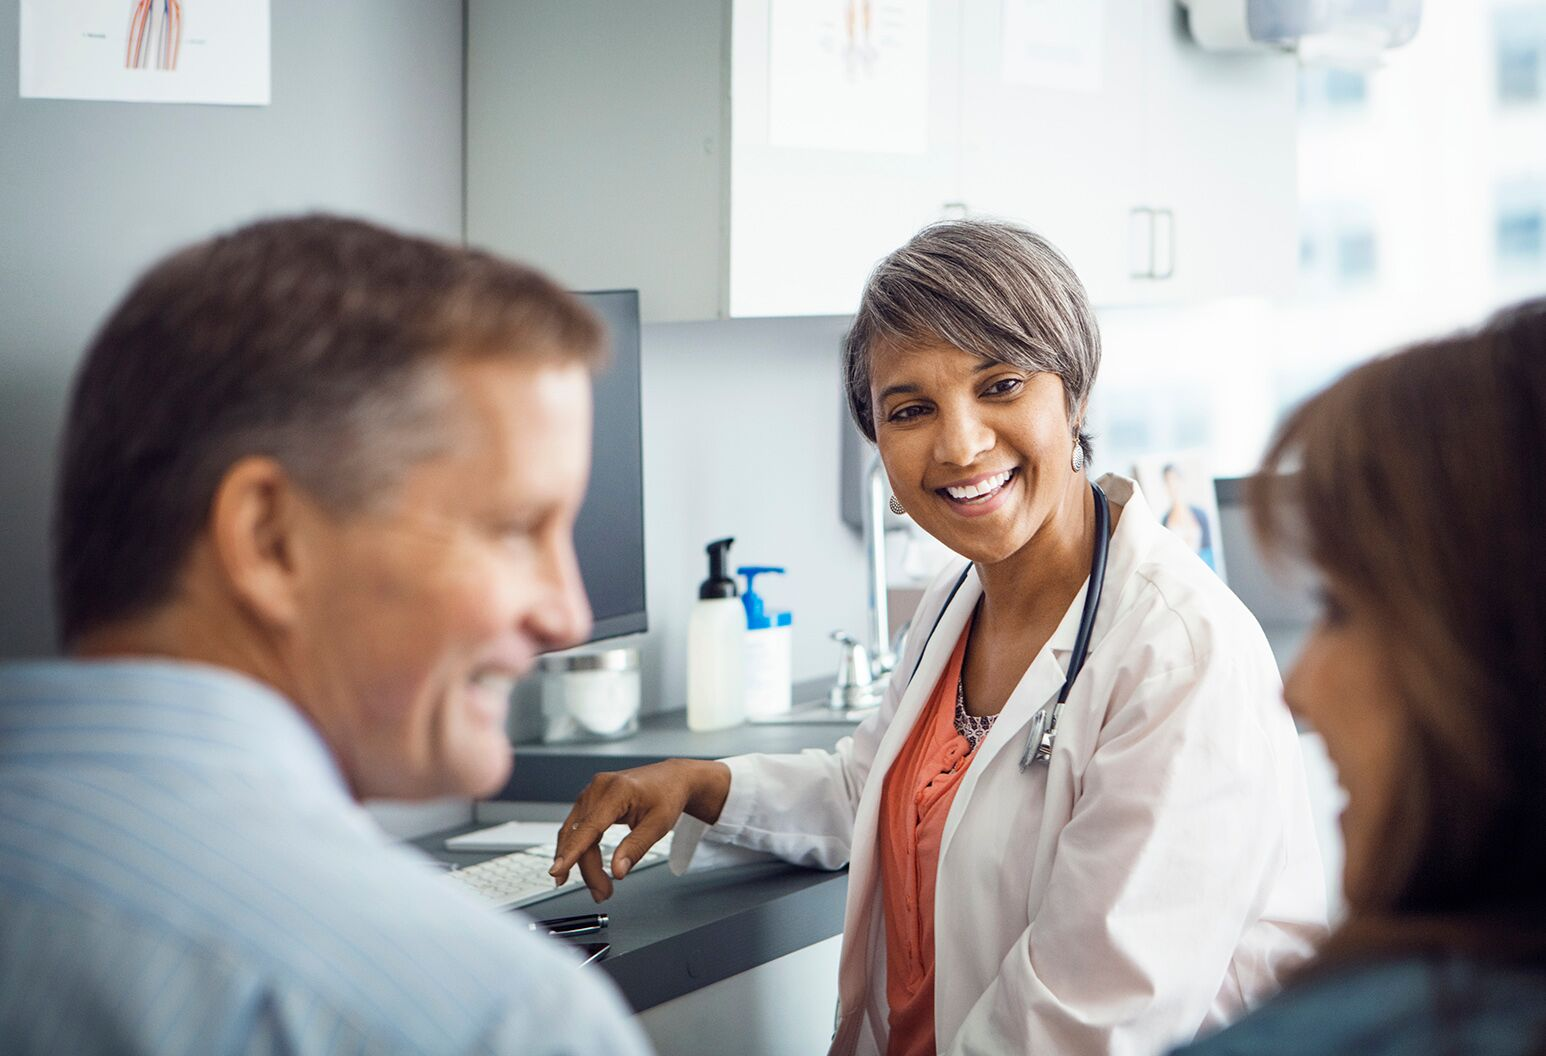 Female doctor smiling while seeing patients in the exam room.